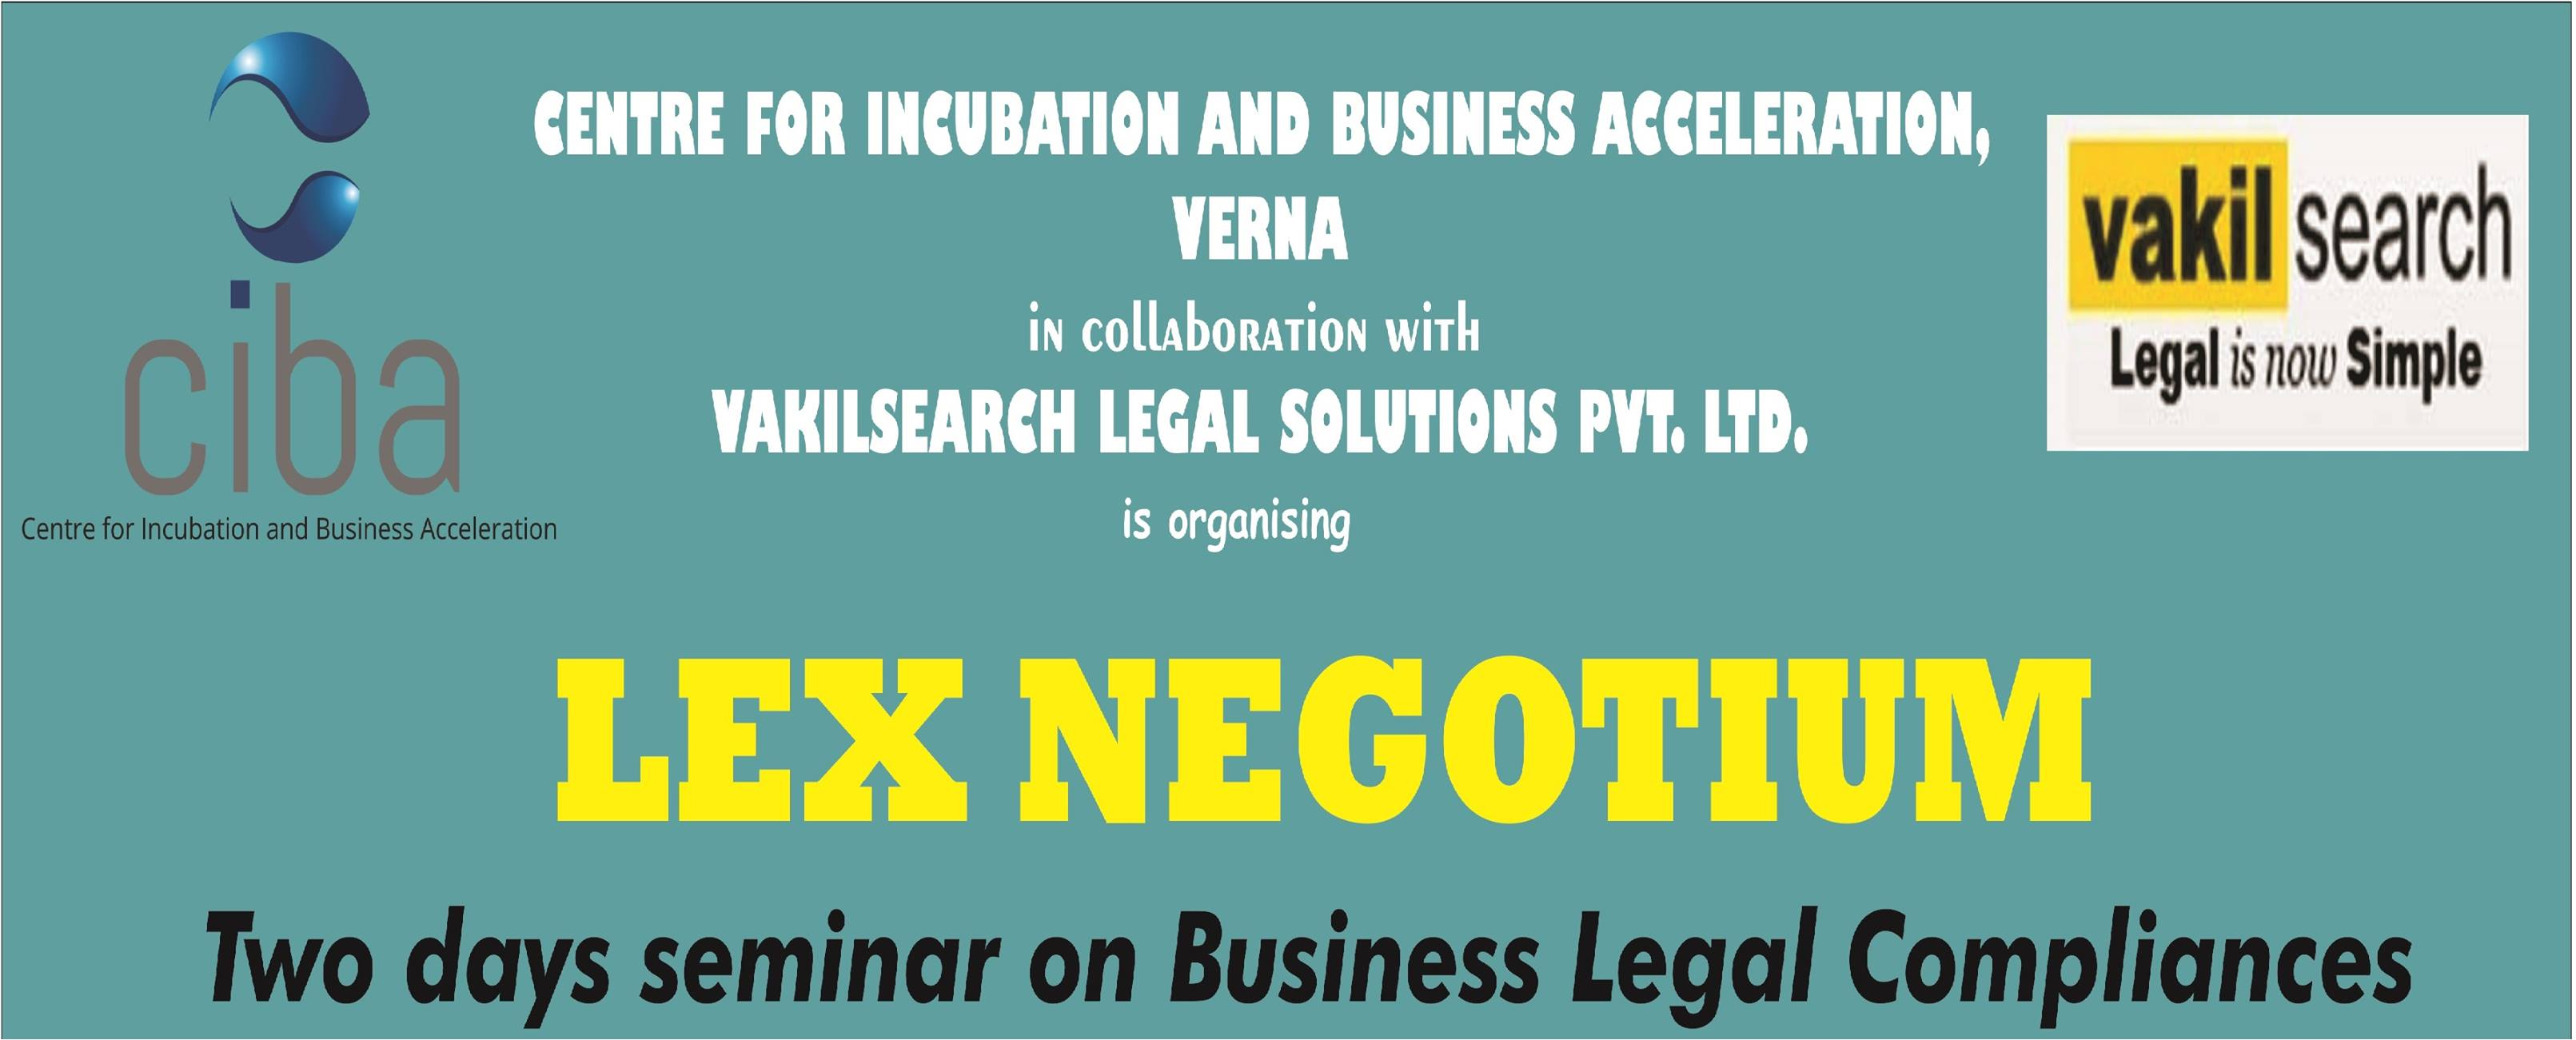 ciba-LEX NEGOTIUM- Seminar on Business Legal Compliance